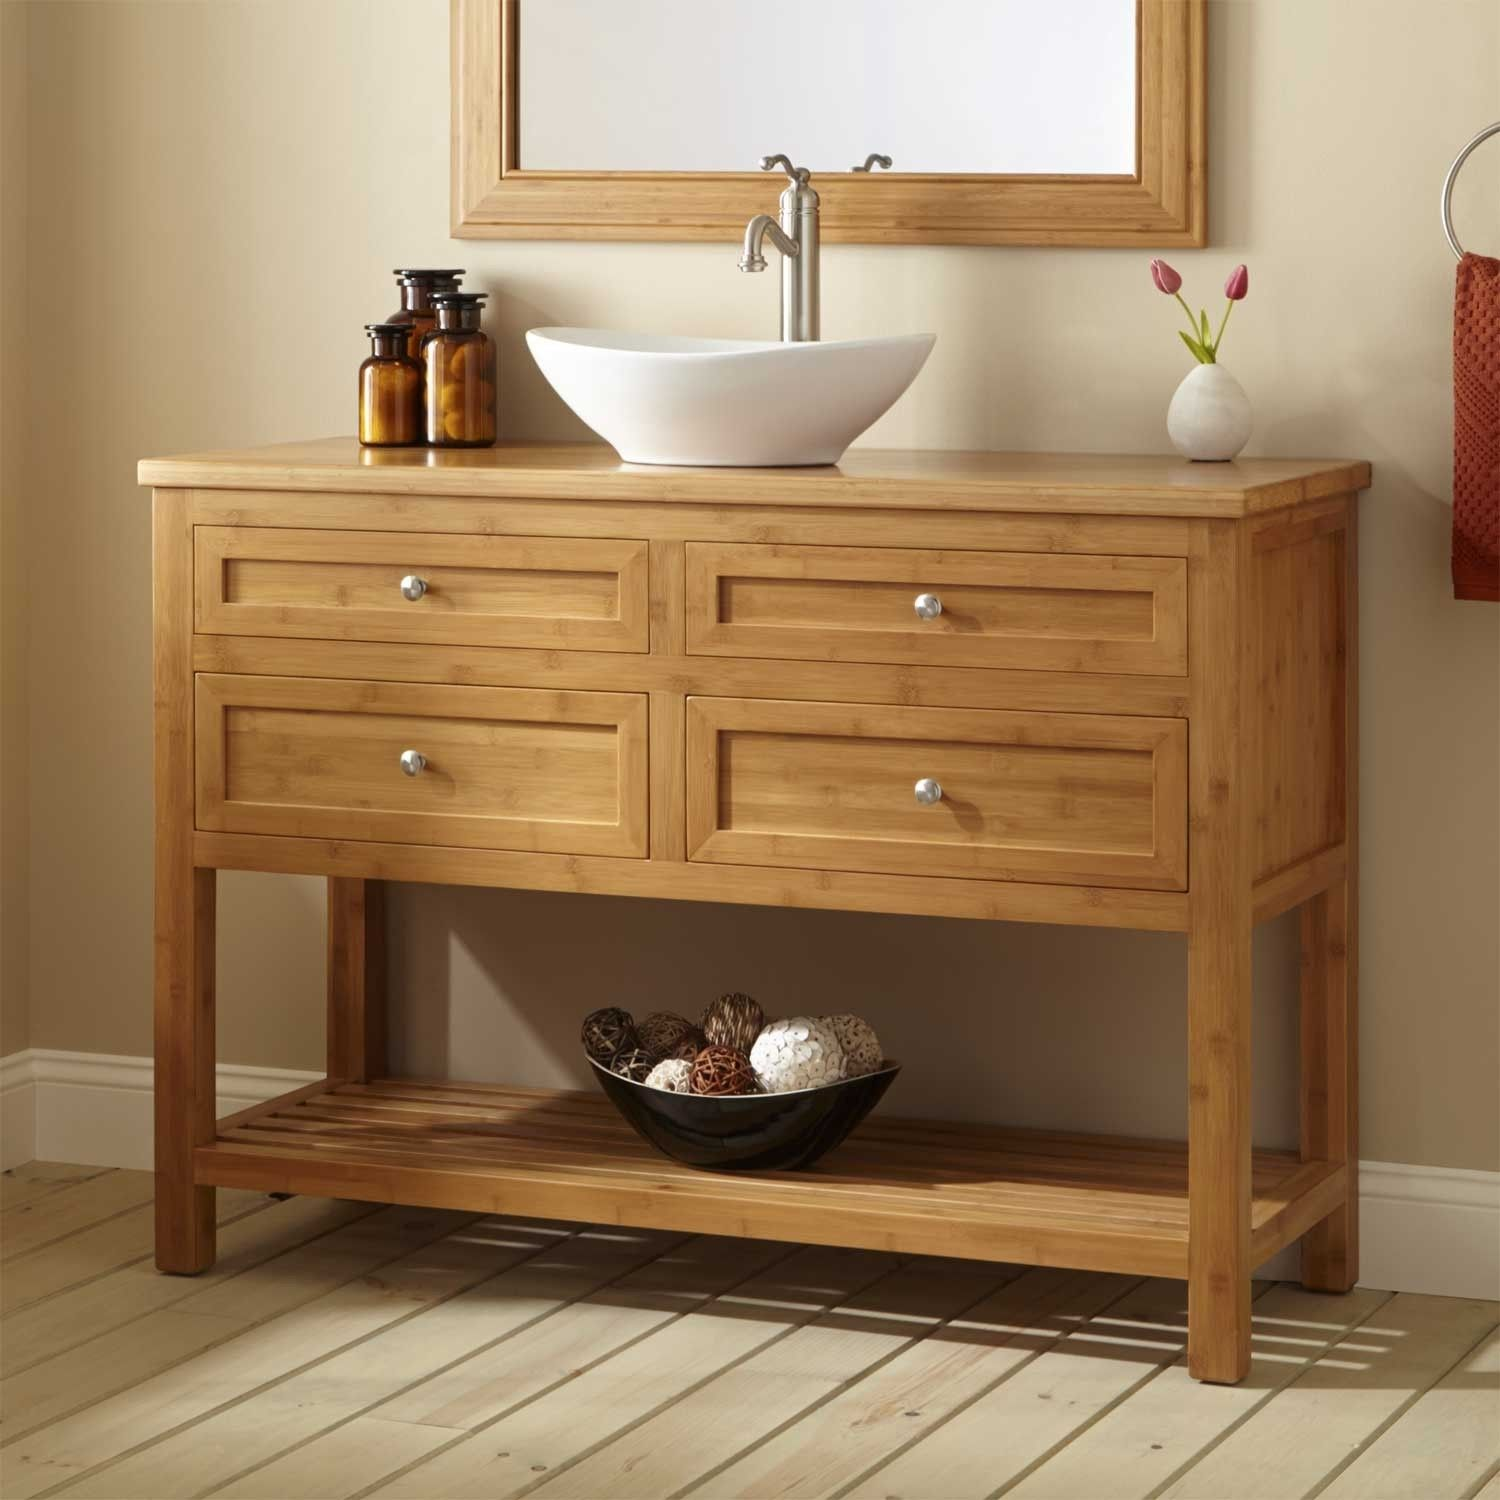 Unstained Wooden Bathroom Vanity Table With 4 Drawer And White Interesting Narrow Depth Bathroom Vanity Inspiration